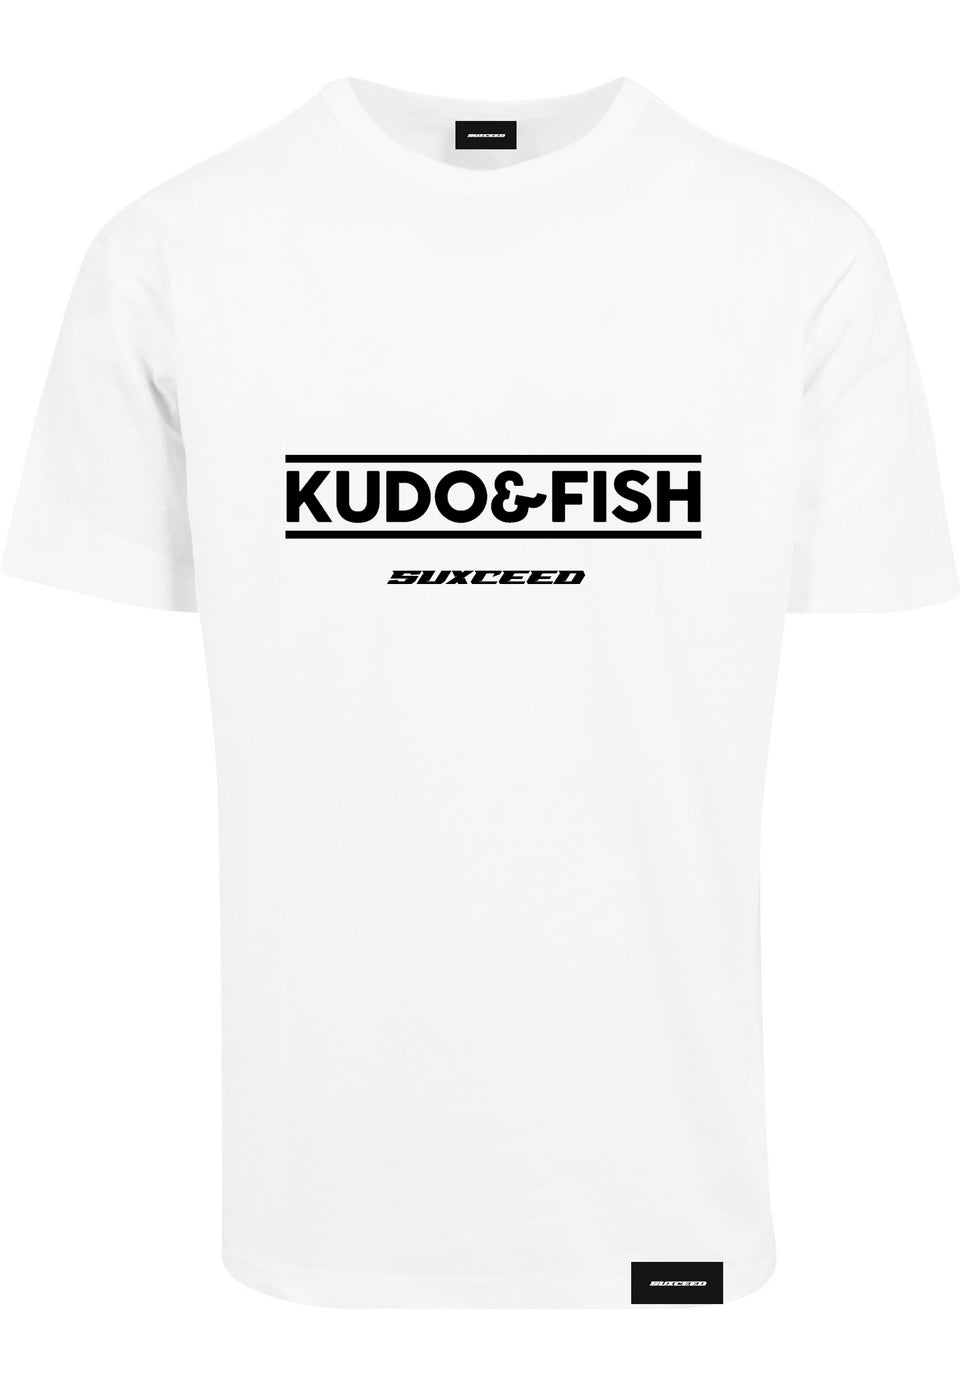 Kudo & Fish x Suxceed Tshirt (MENS)